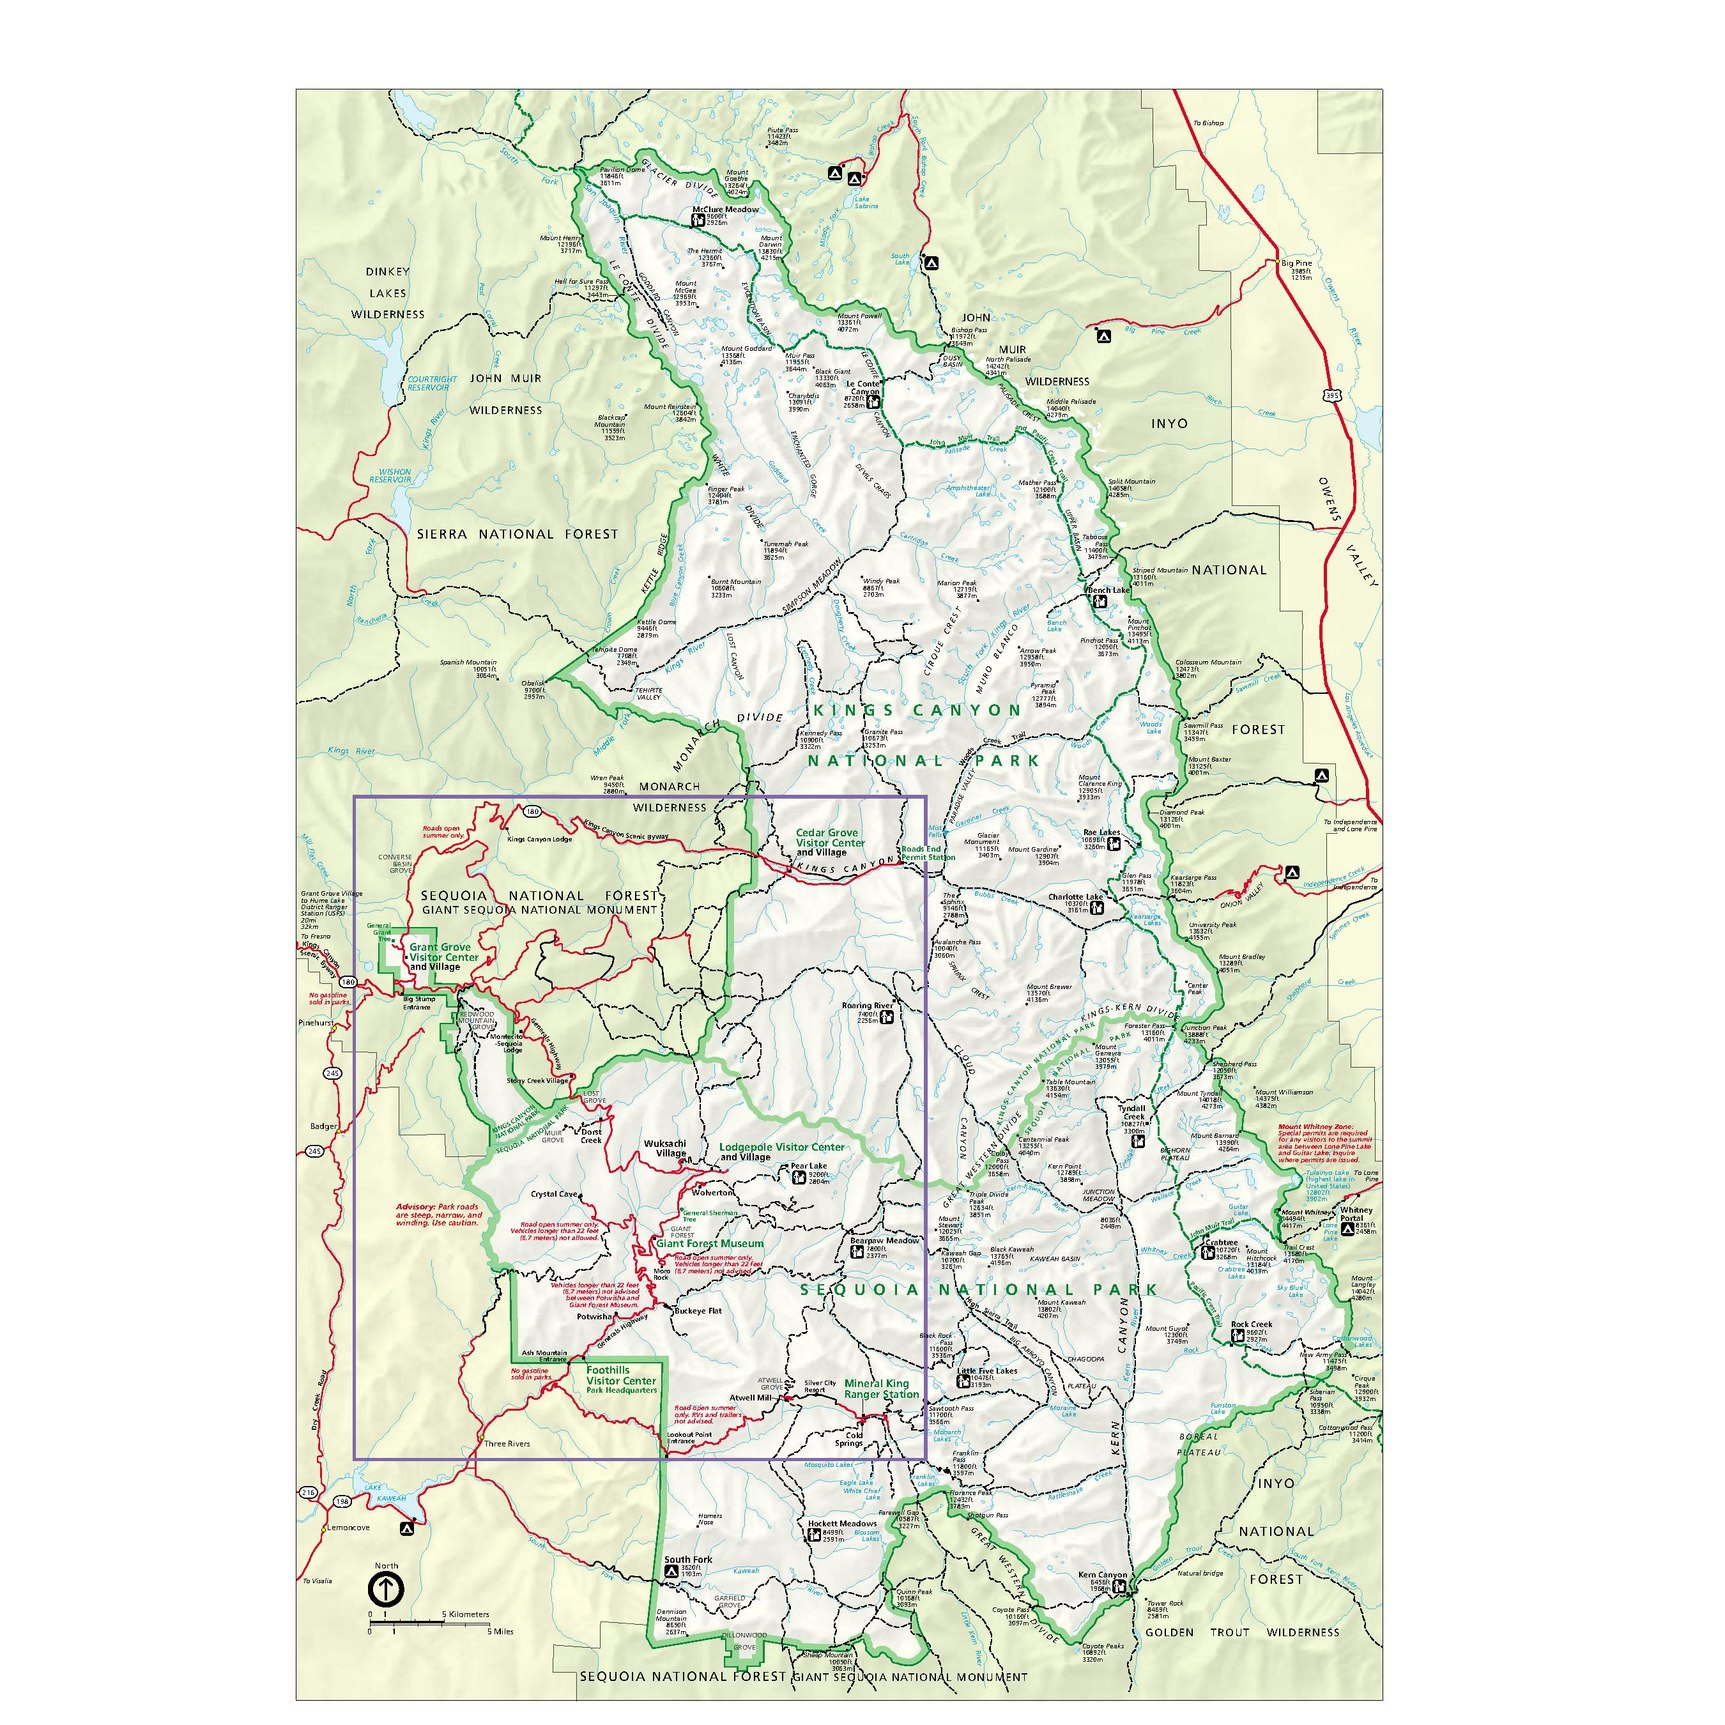 File:NPS sequoia-kings-canyon-park-map.pdf - Wikimedia Commons on california national parks map, giant sequoia national park map, kings canyon np map,